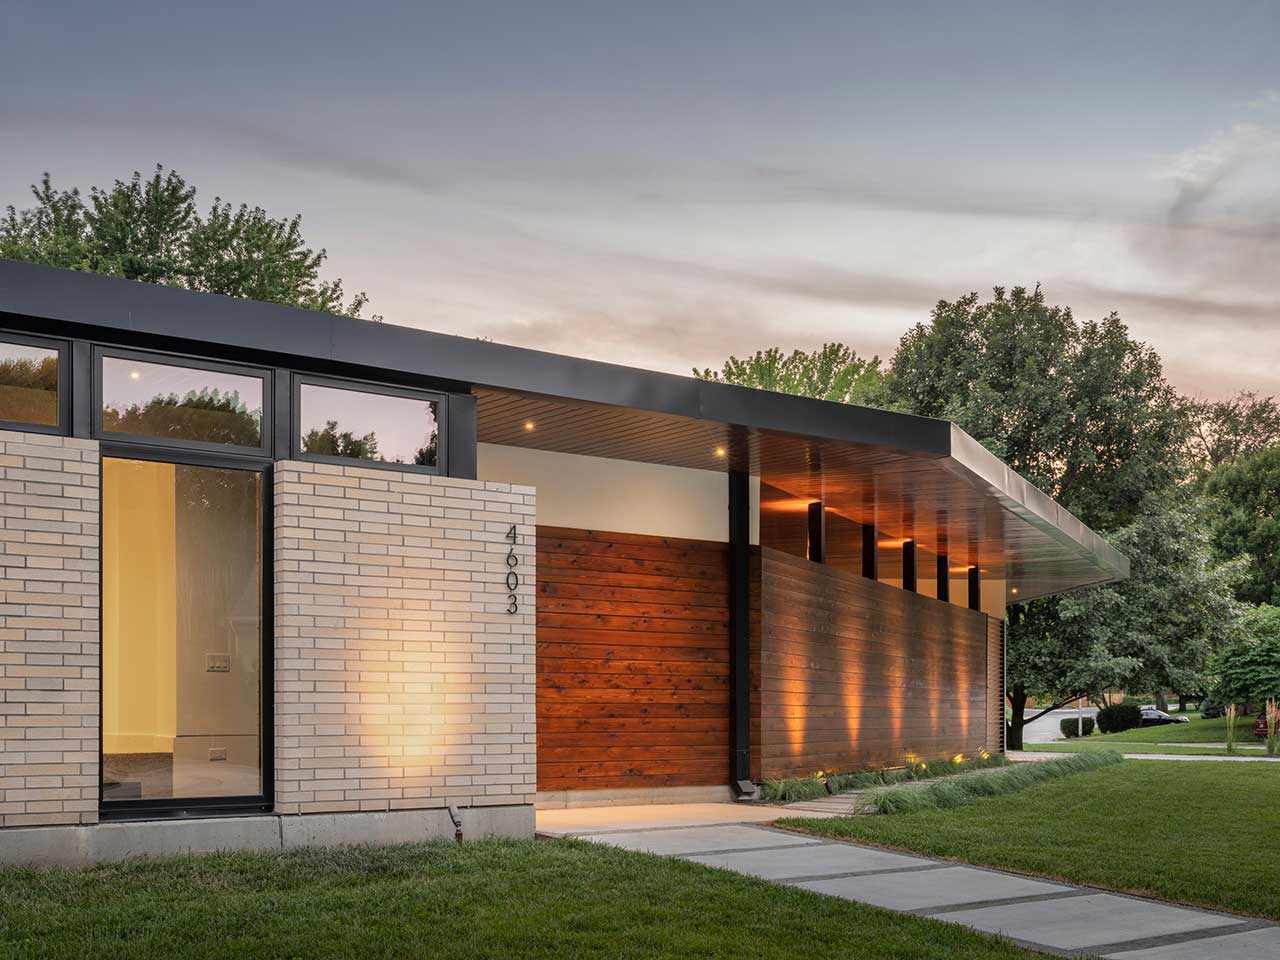 The Homestead Residence in Kansas Gives Nod to Mid-Century Modern Design